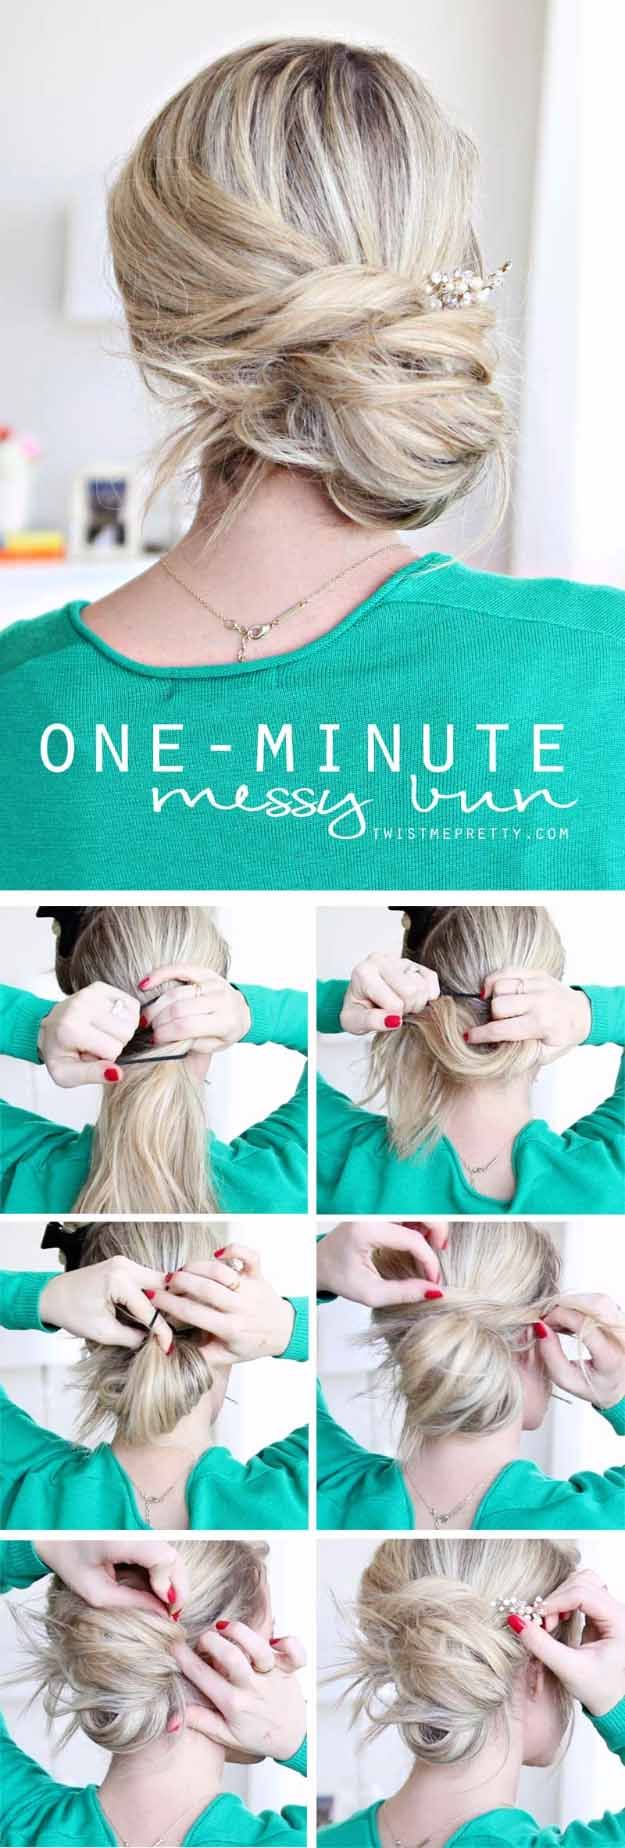 Long Hair Styles for 2017 - One-Minute Messy Bun Tutorial- Easy Tutorials for Lo...